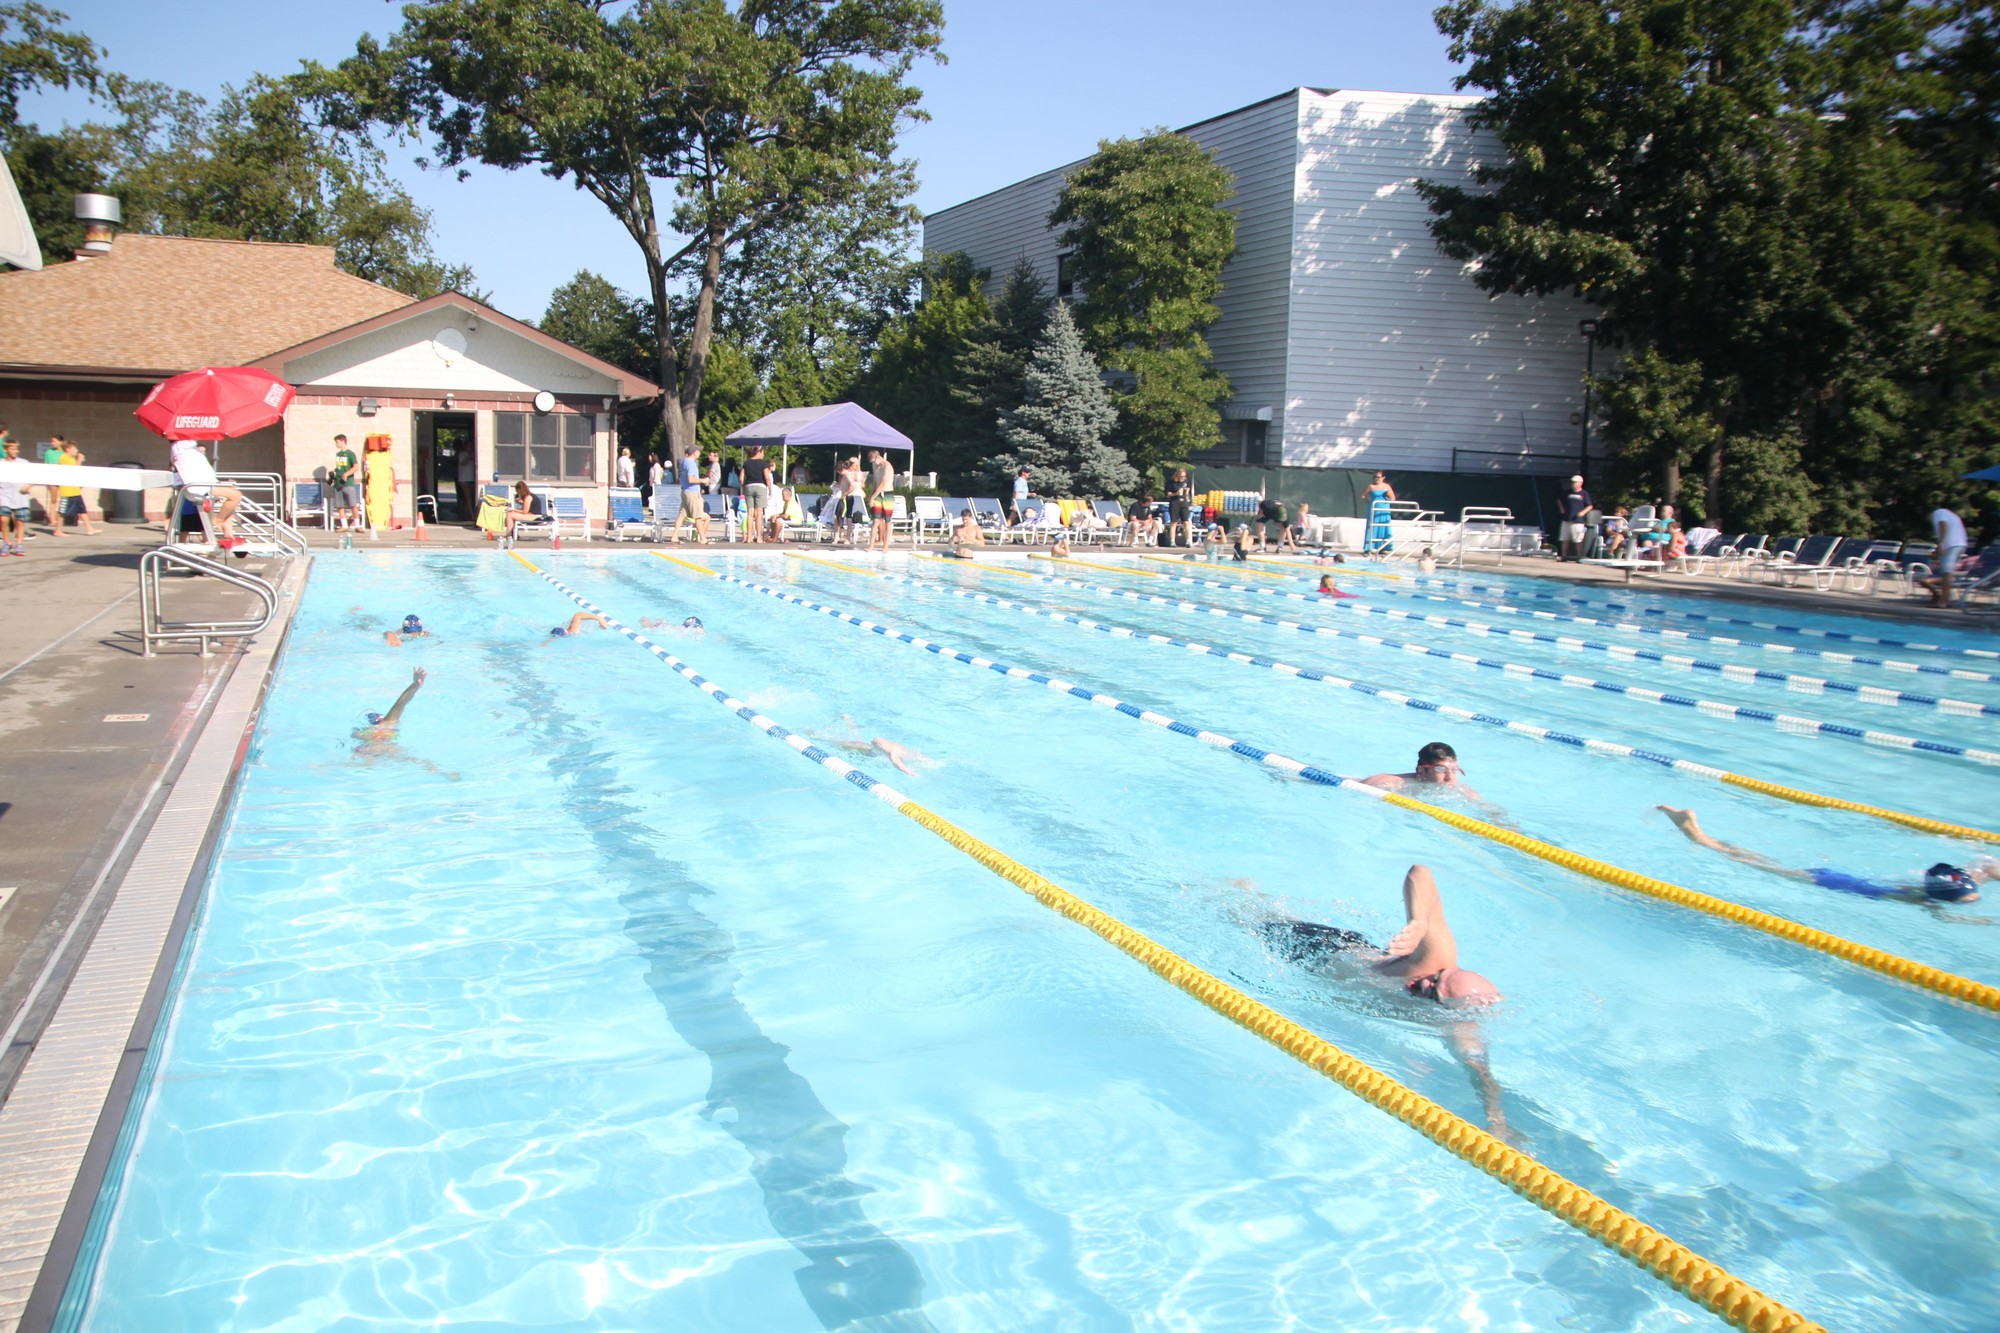 Rvc lynbrook agree to pool use herald community - Pools on the park swimming lessons ...